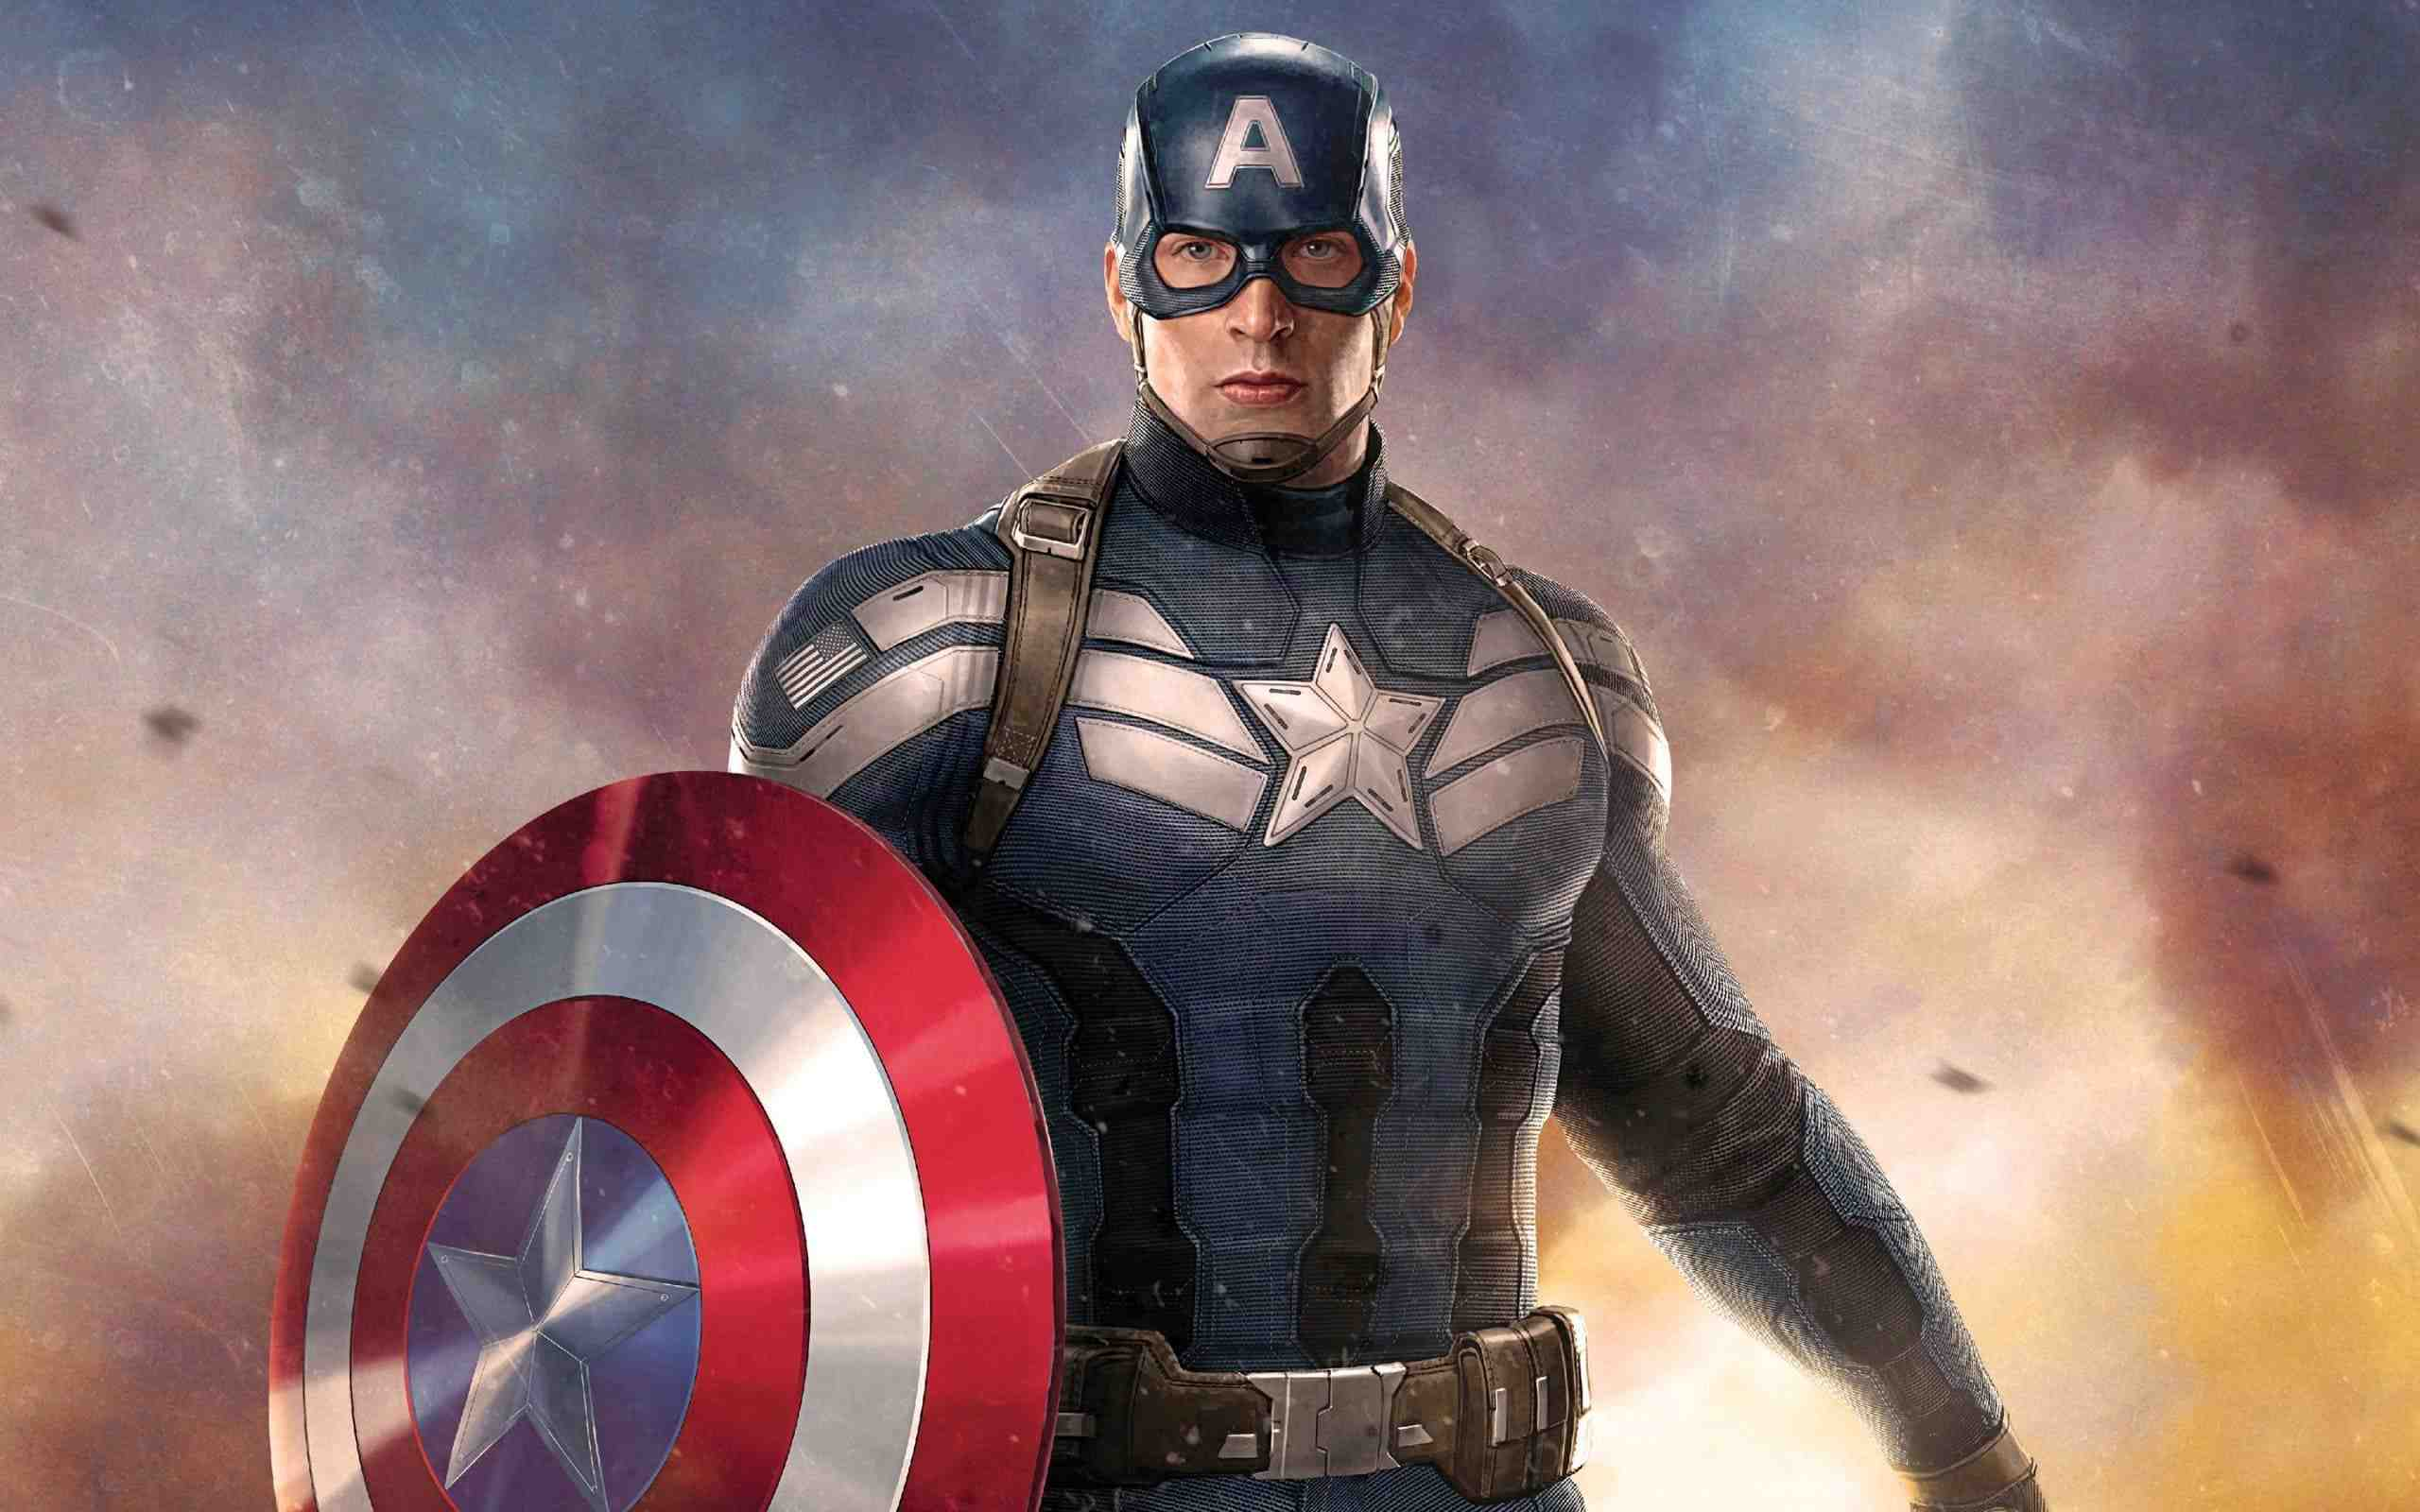 Captain America Fortnite skin